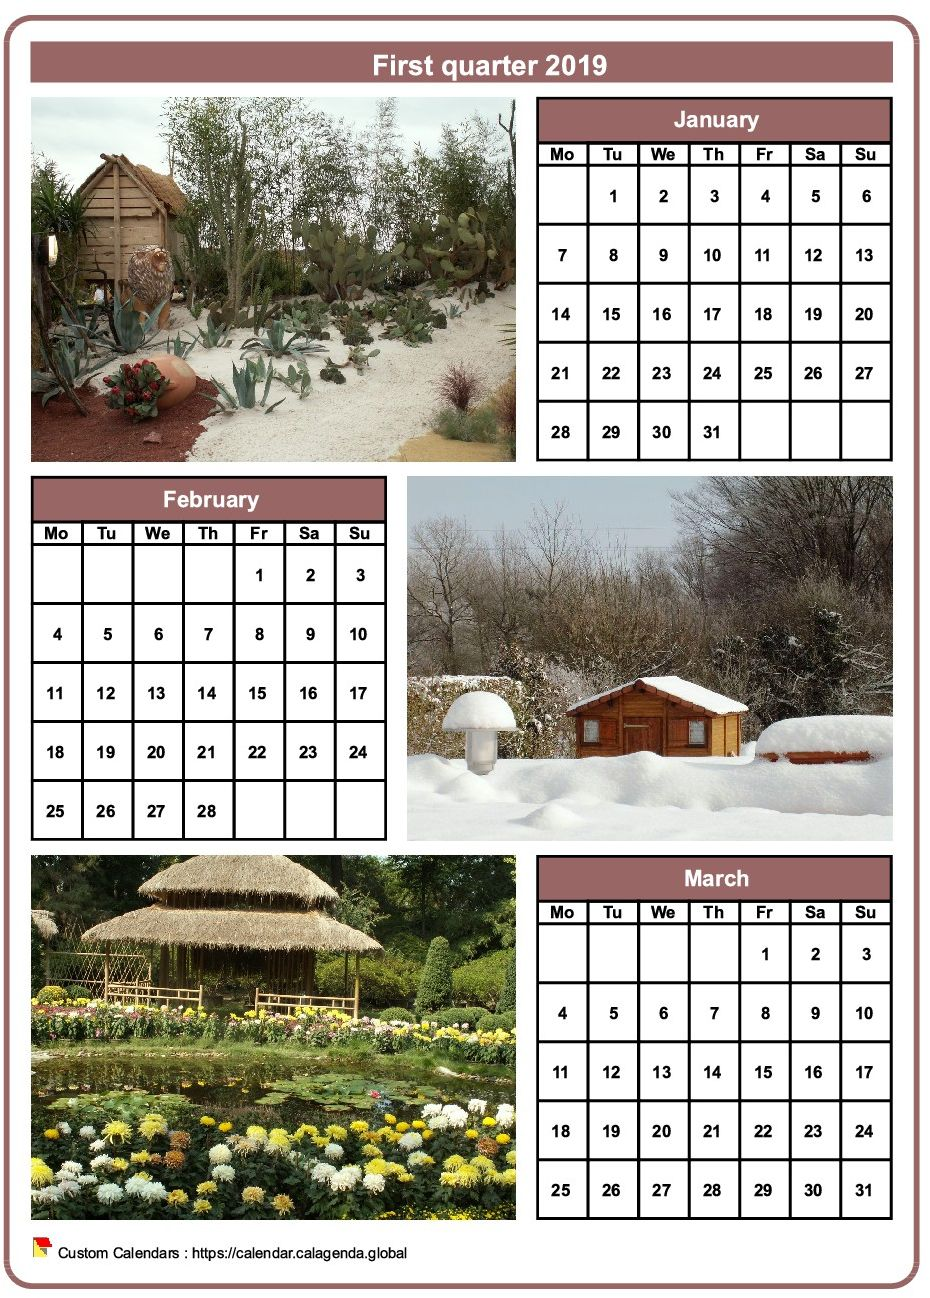 Calendar 2019 quarterly with a different photo every month